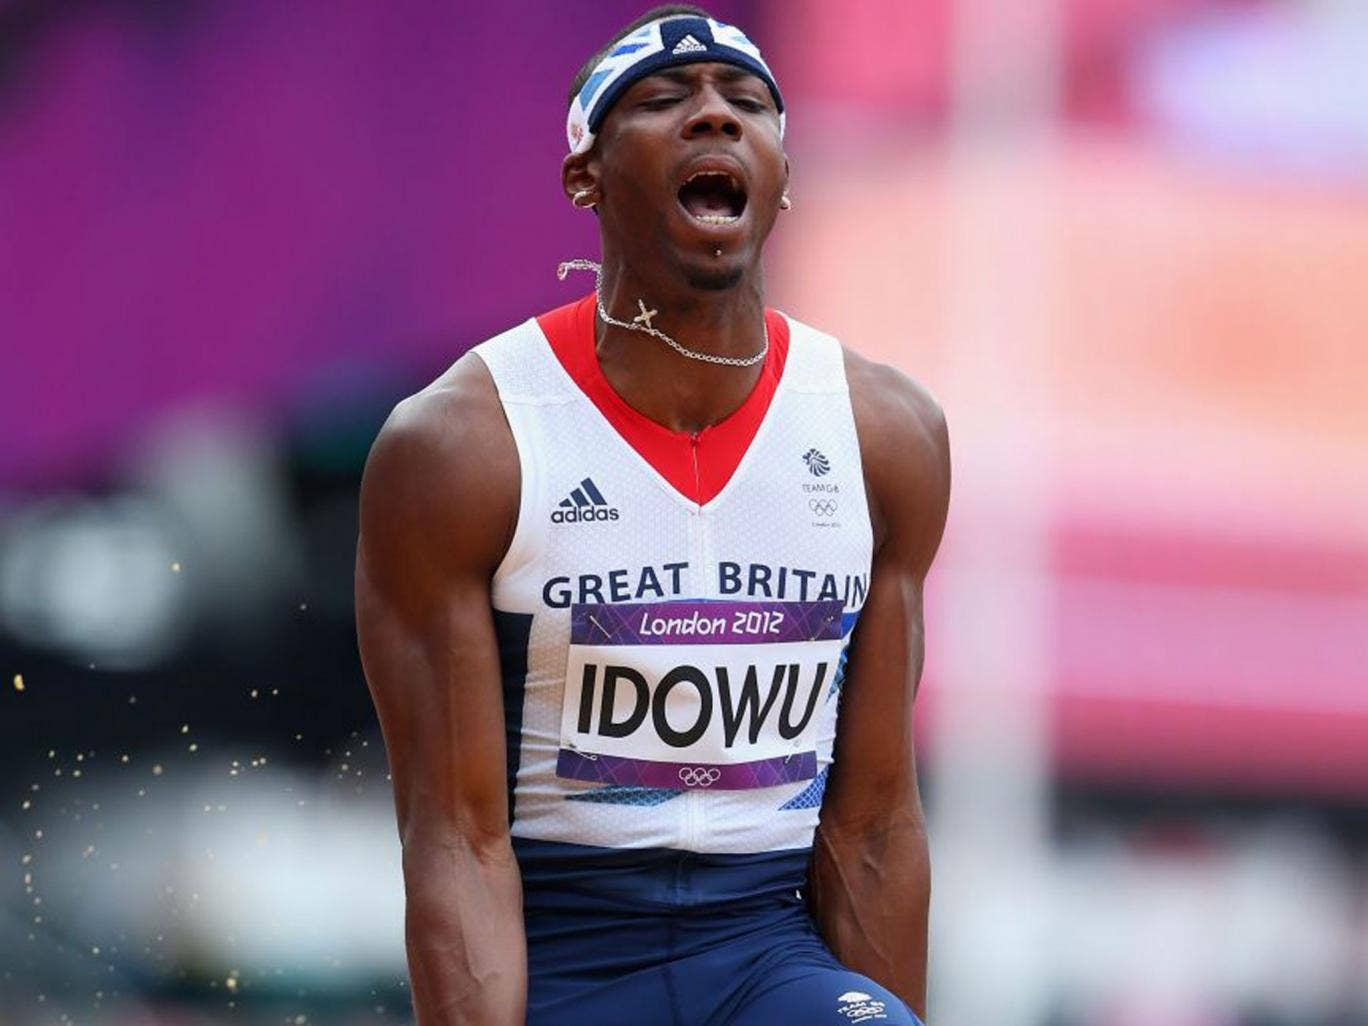 Phillips Idowu shows his frustration at the Olympics last year